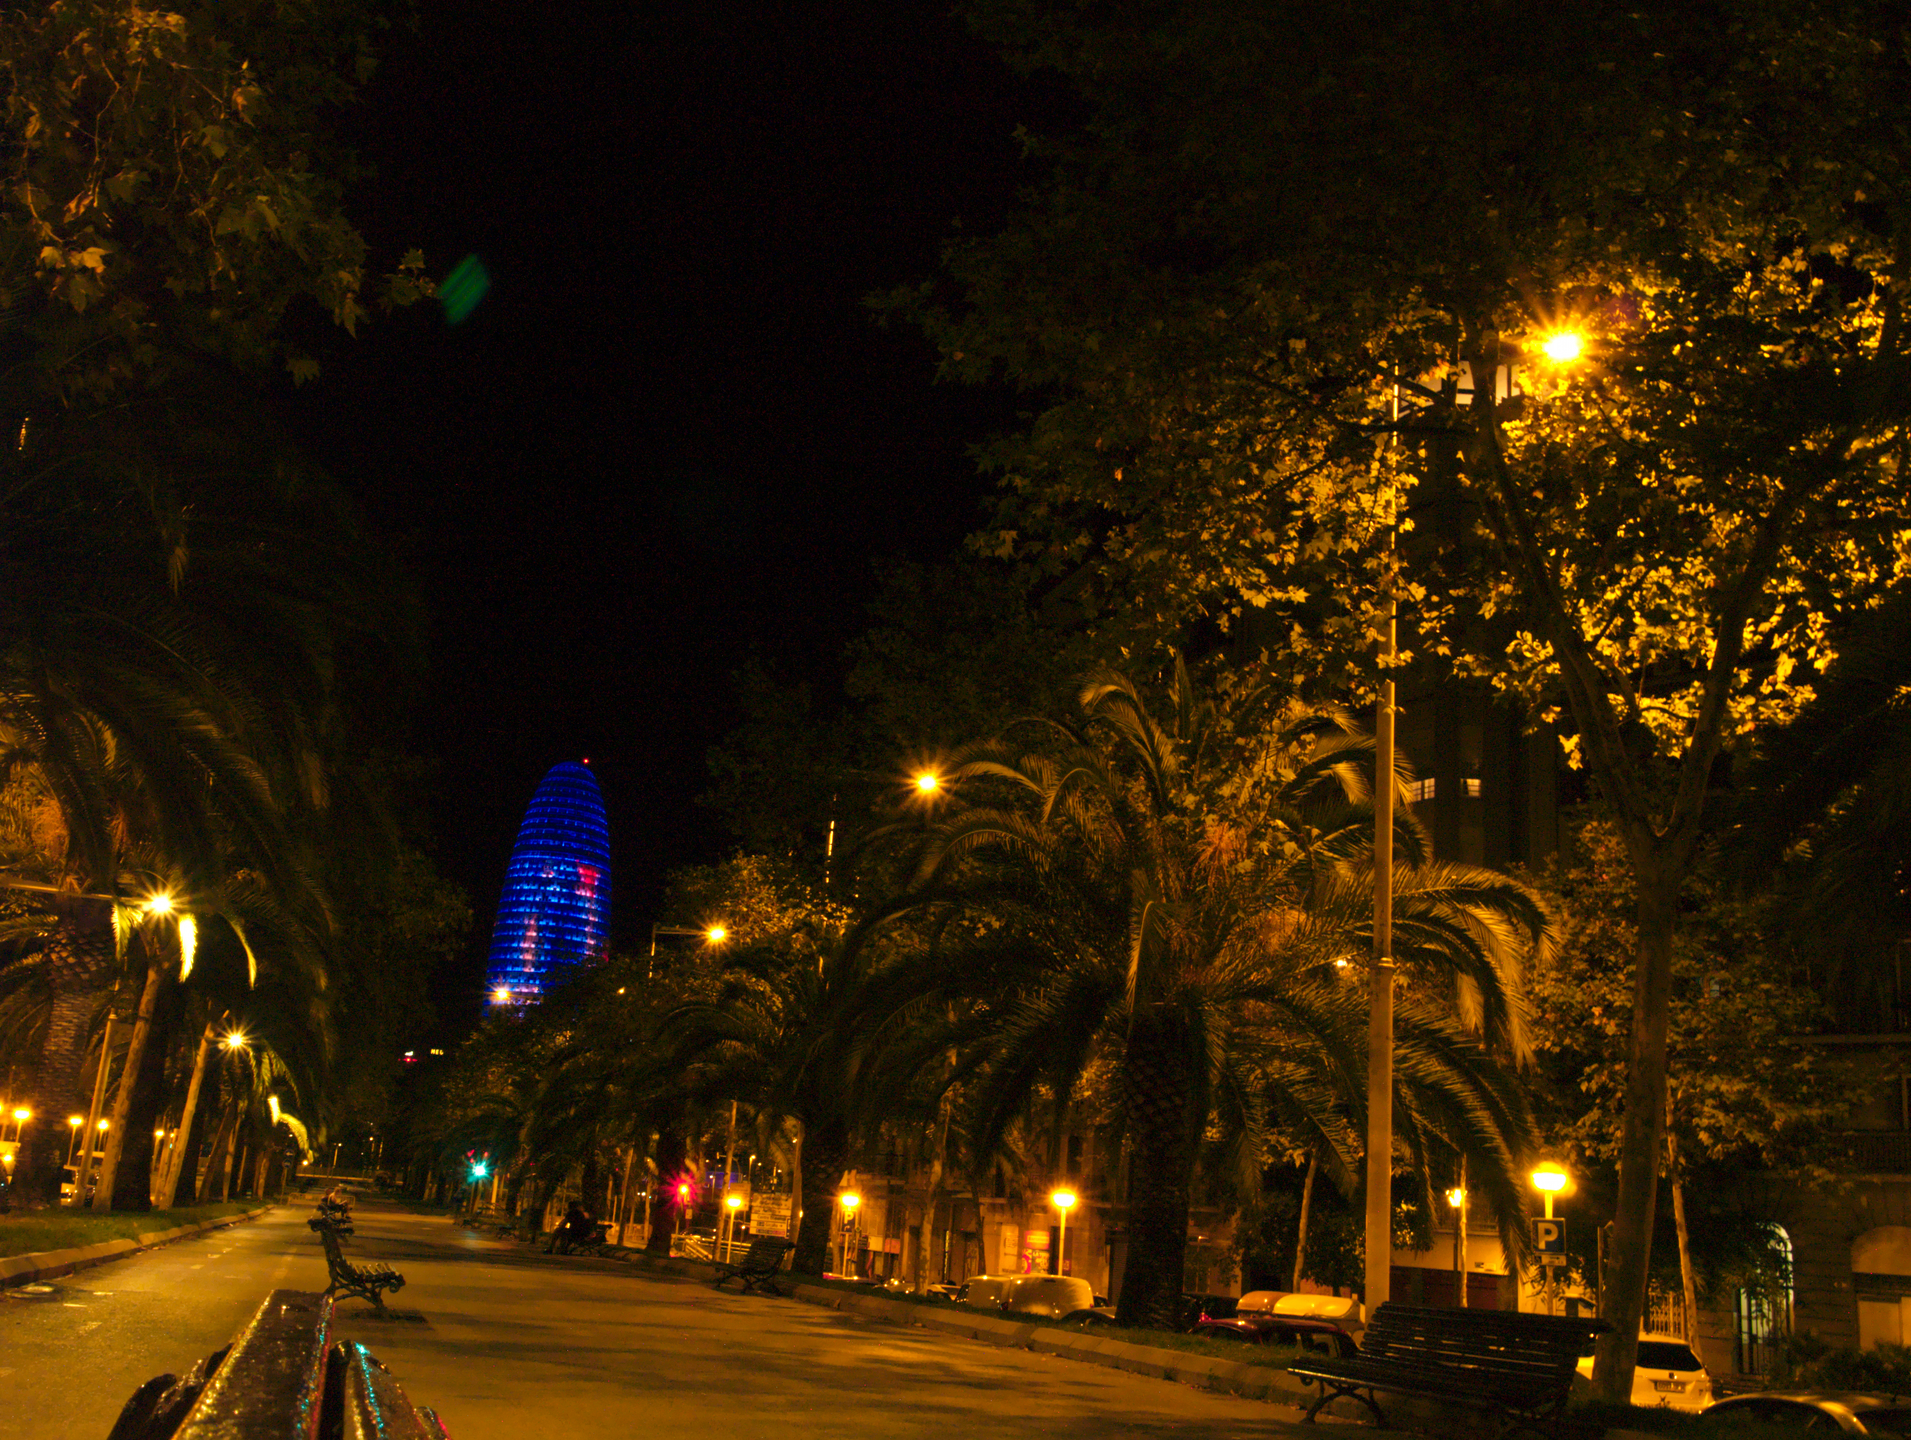 View of Torre Agbar from Av. Diagonal